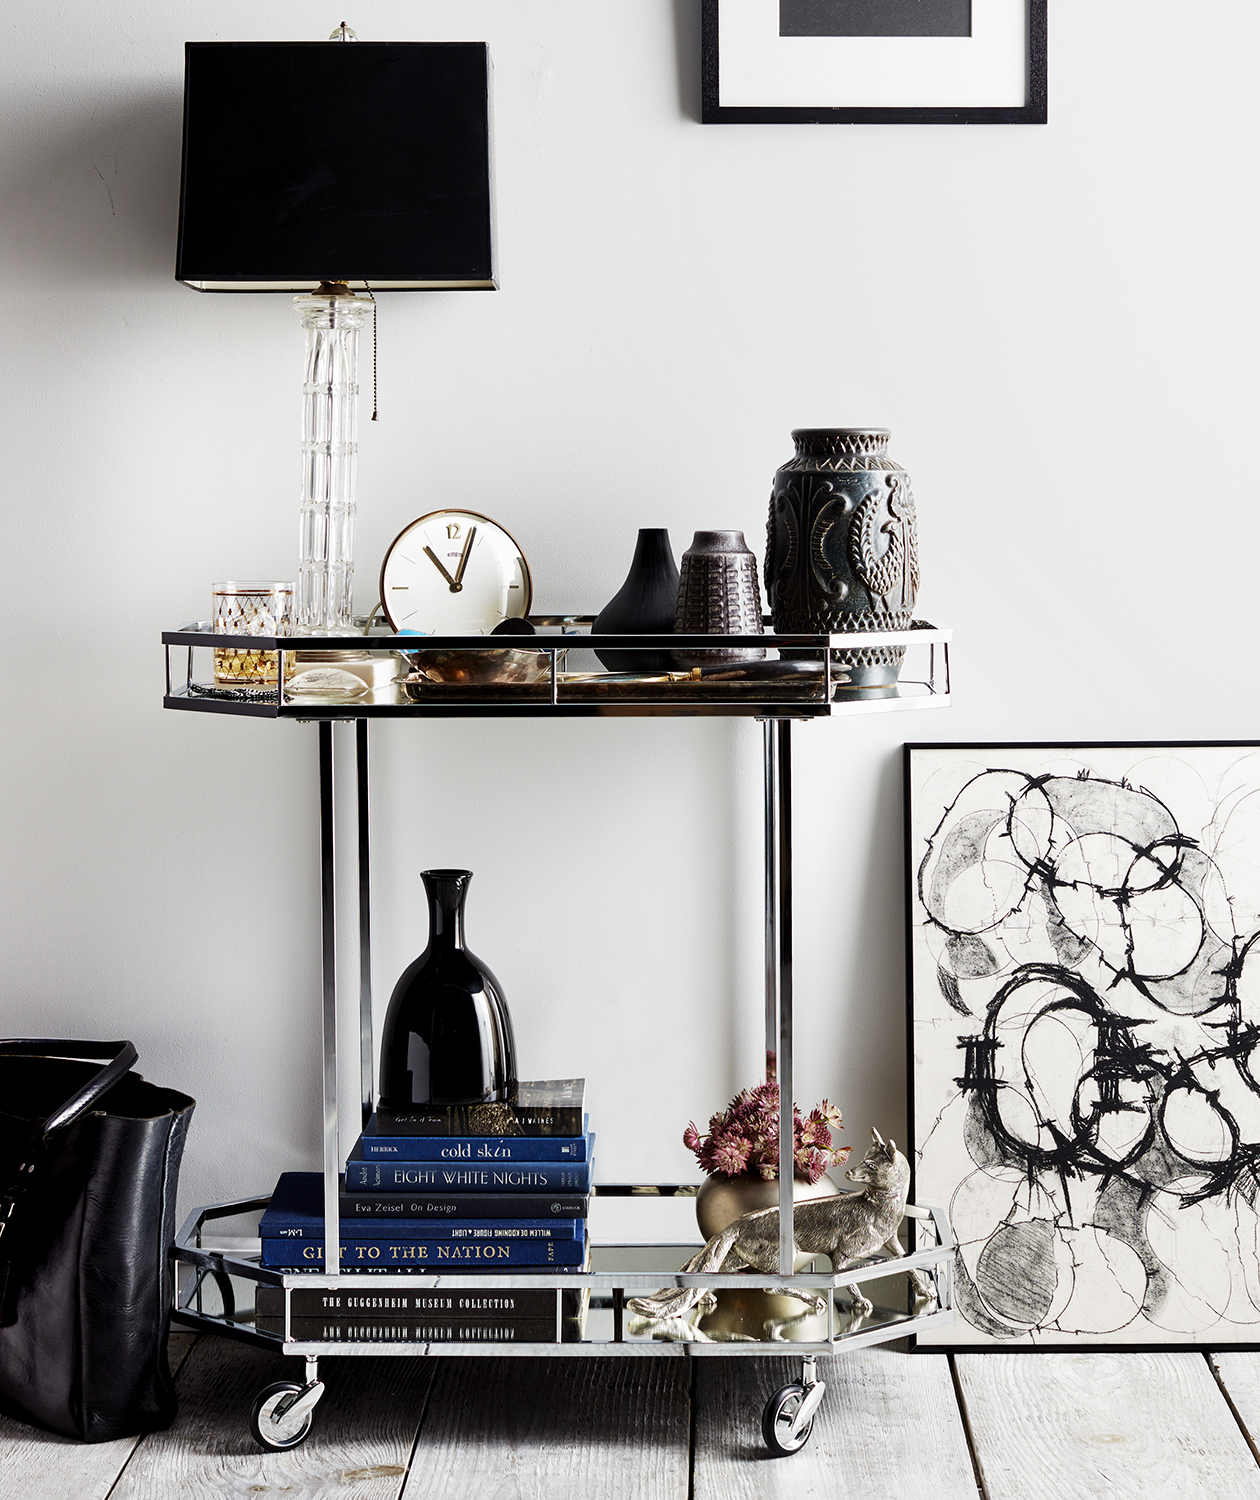 Bedside Display bar cart